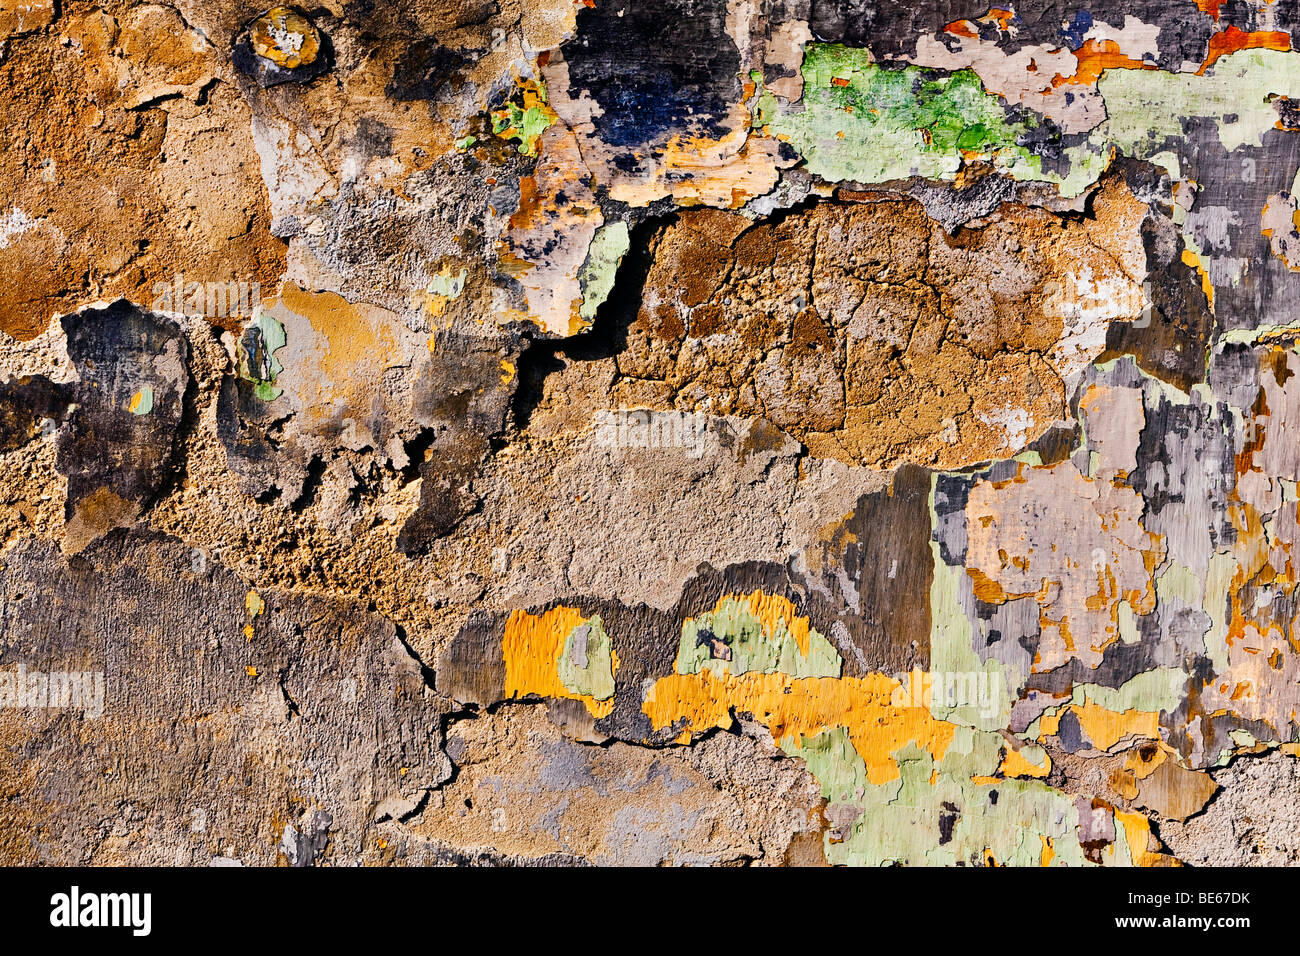 Weathered facade - Stock Image